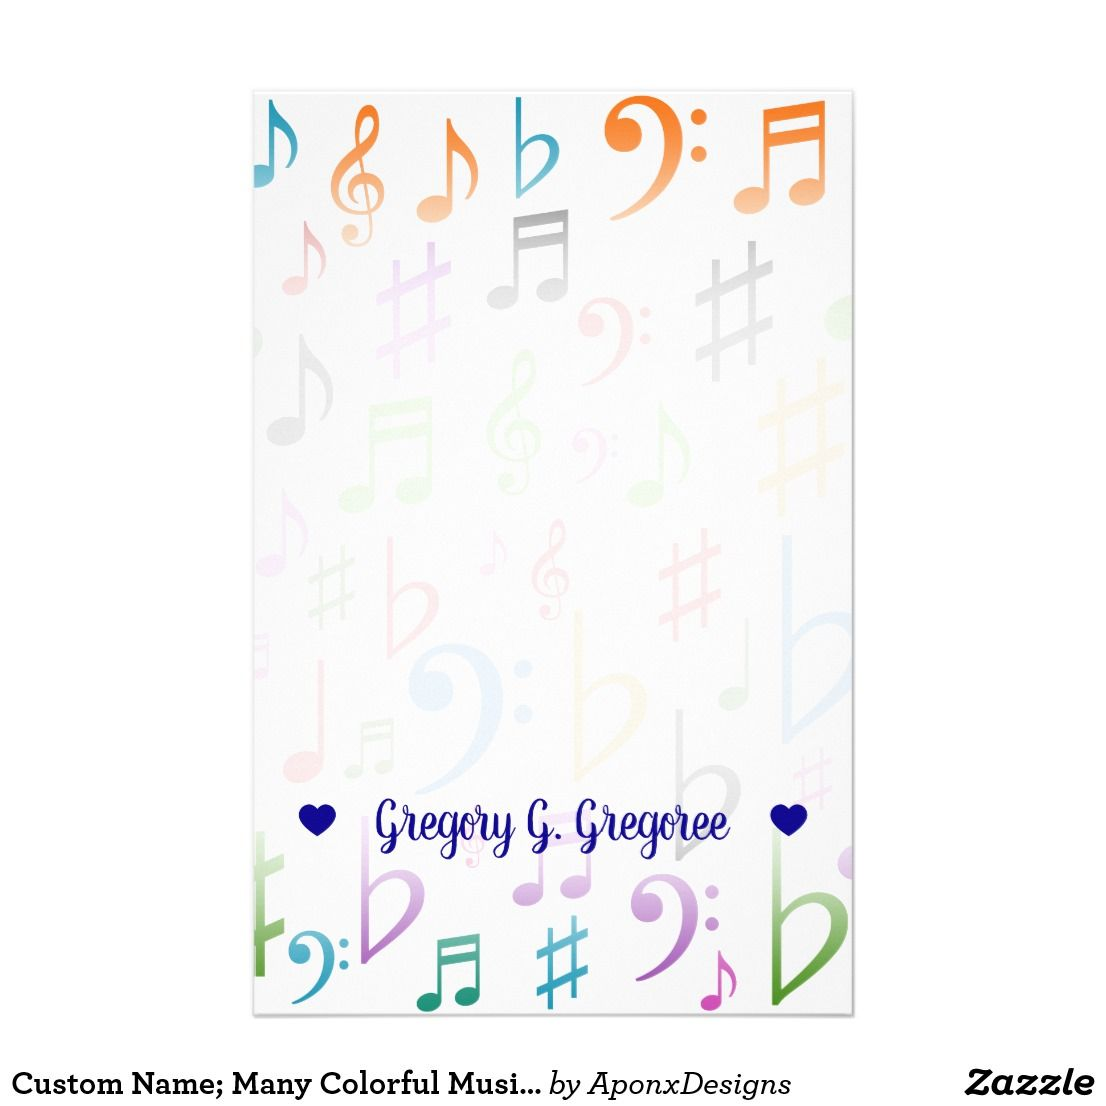 Custom Name Many Colorful Music Notes And Symbols Stationery